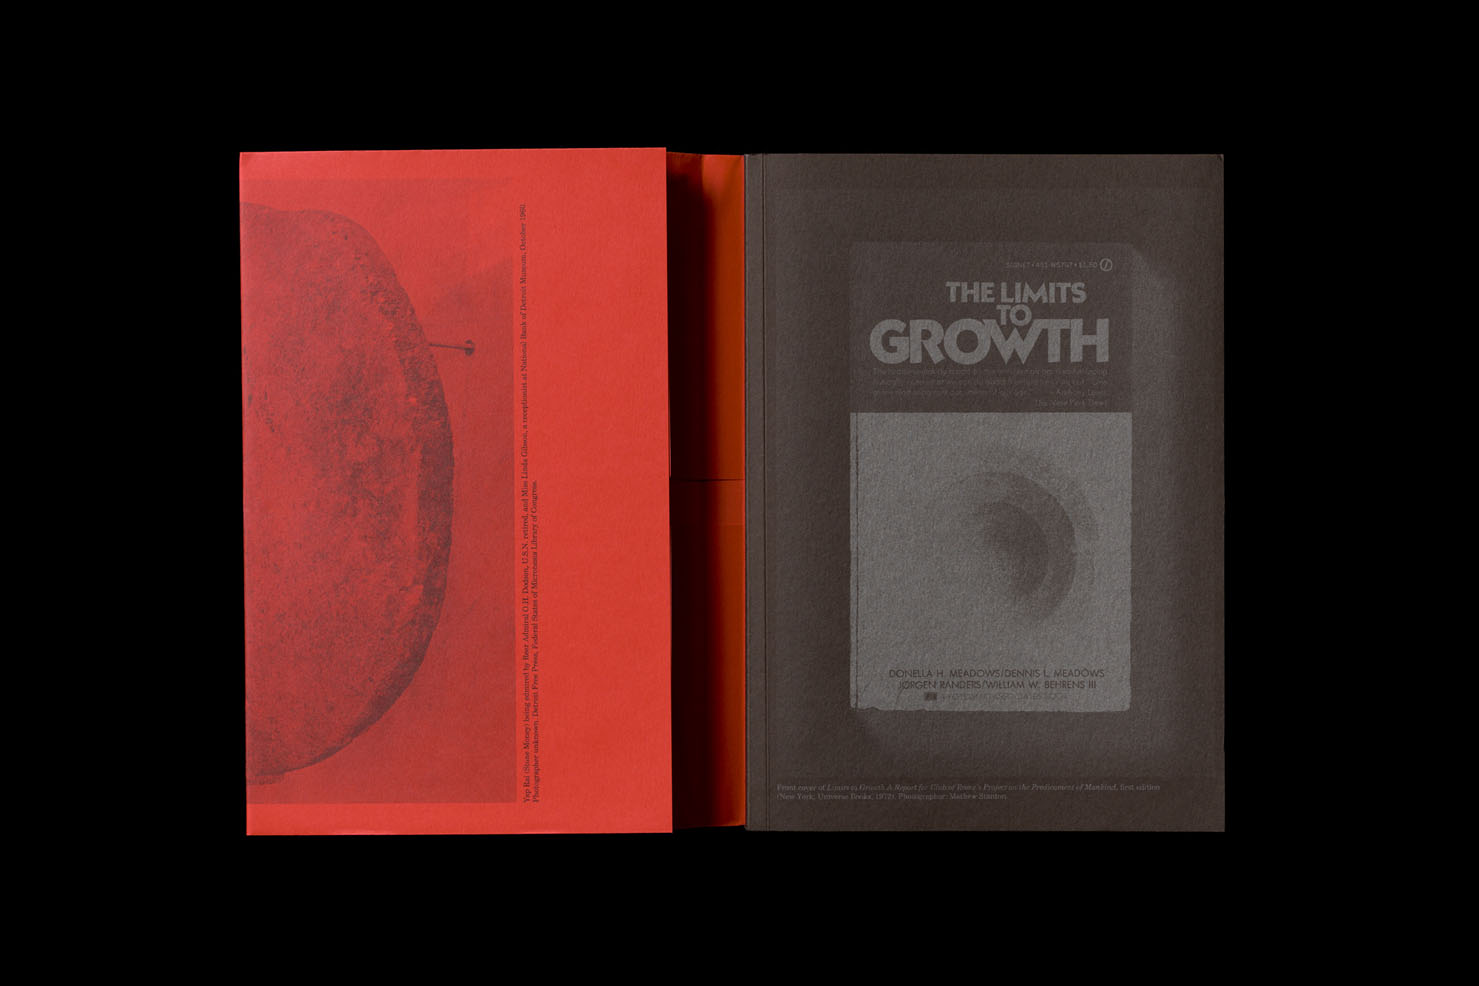 Nicholas Mangan: Limits to Growth. Softcvoer, 246 pp + 2 inserts, offset, edition of 1500, 170 x 240 mm. Design by Žiga Testen. ISBN 978-3-95679-252-6. Copublished with the Institute of Modern Art, Brisbane; KW Institute for Contemporary Art, Berlin; and Monash University Museum of Art, Melbourne